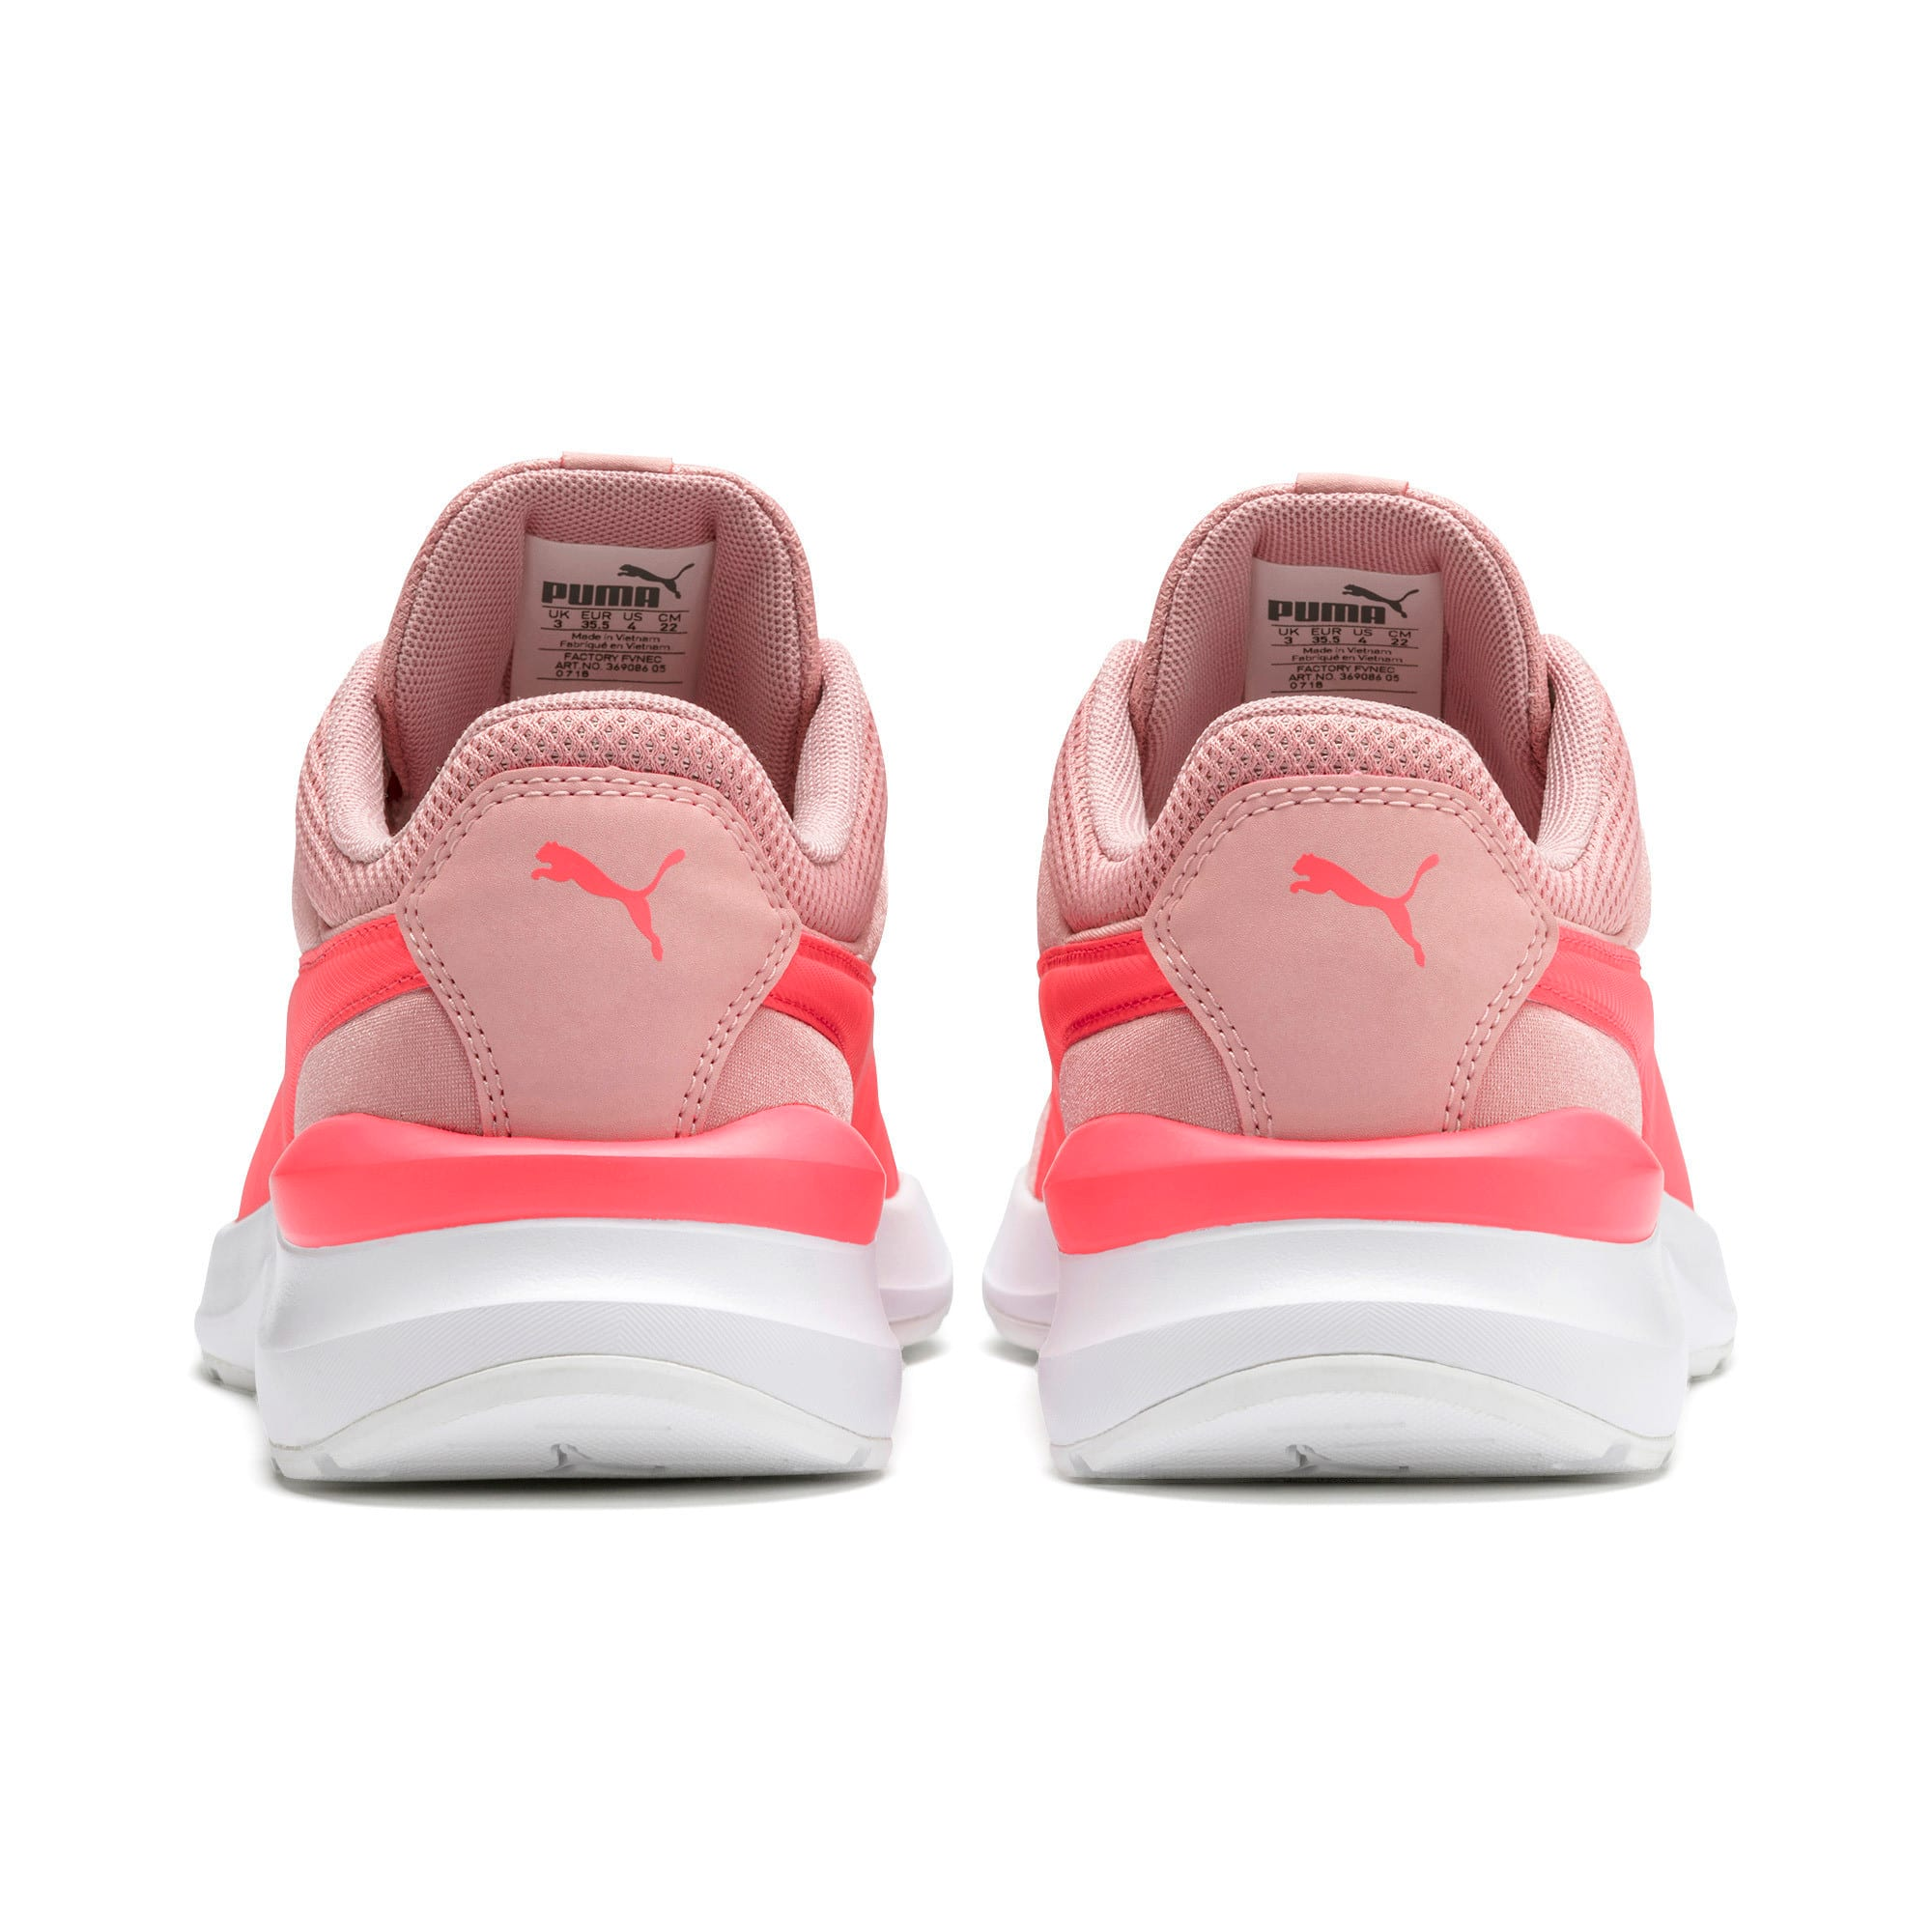 Thumbnail 3 of Adela Satin Girls' Trainers, Bridal Rose-Calypso Coral, medium-IND